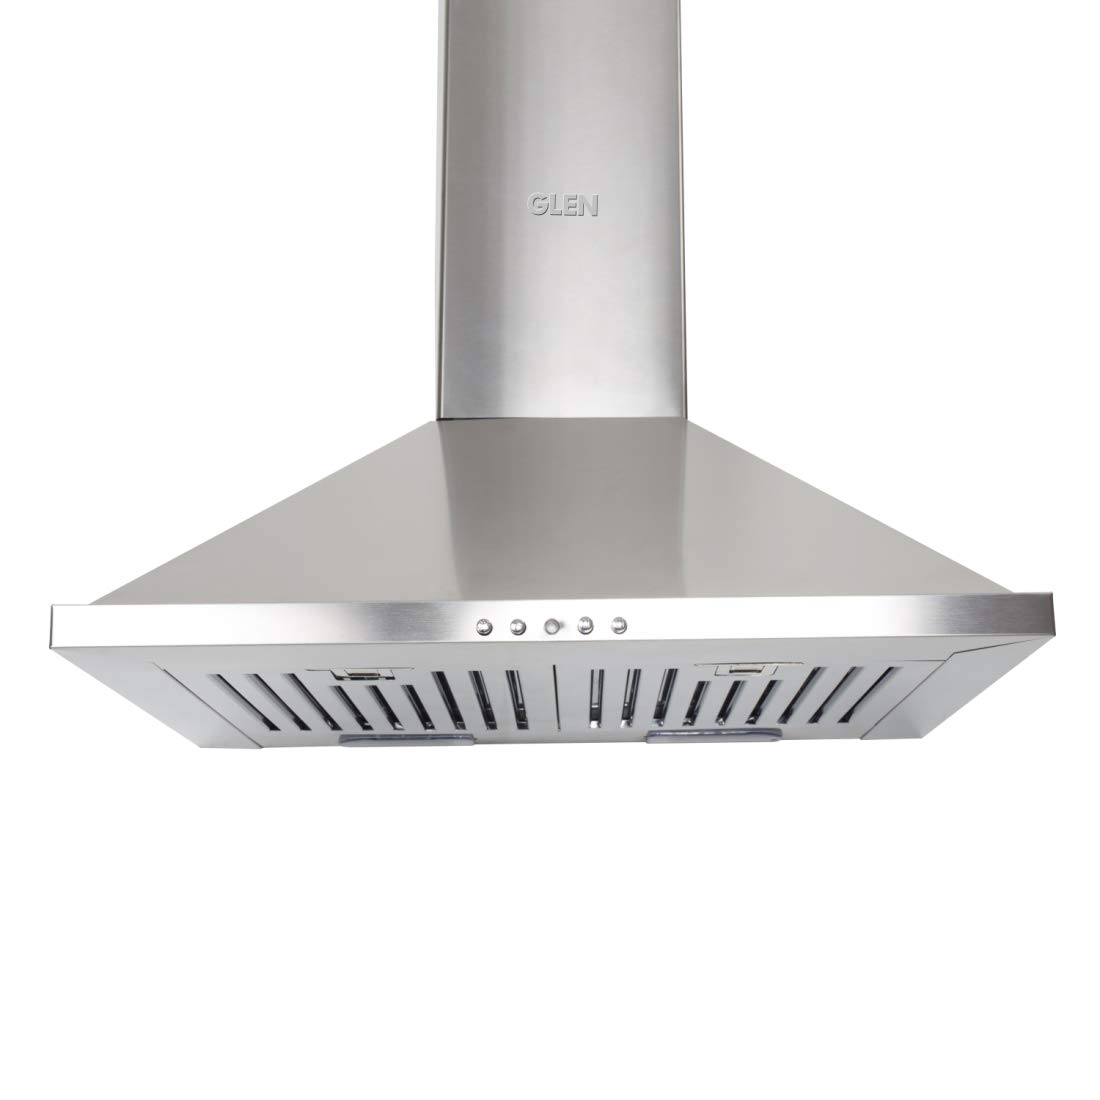 Top 10 kitchen chimneys in India, Buyer's Guide and Review 10